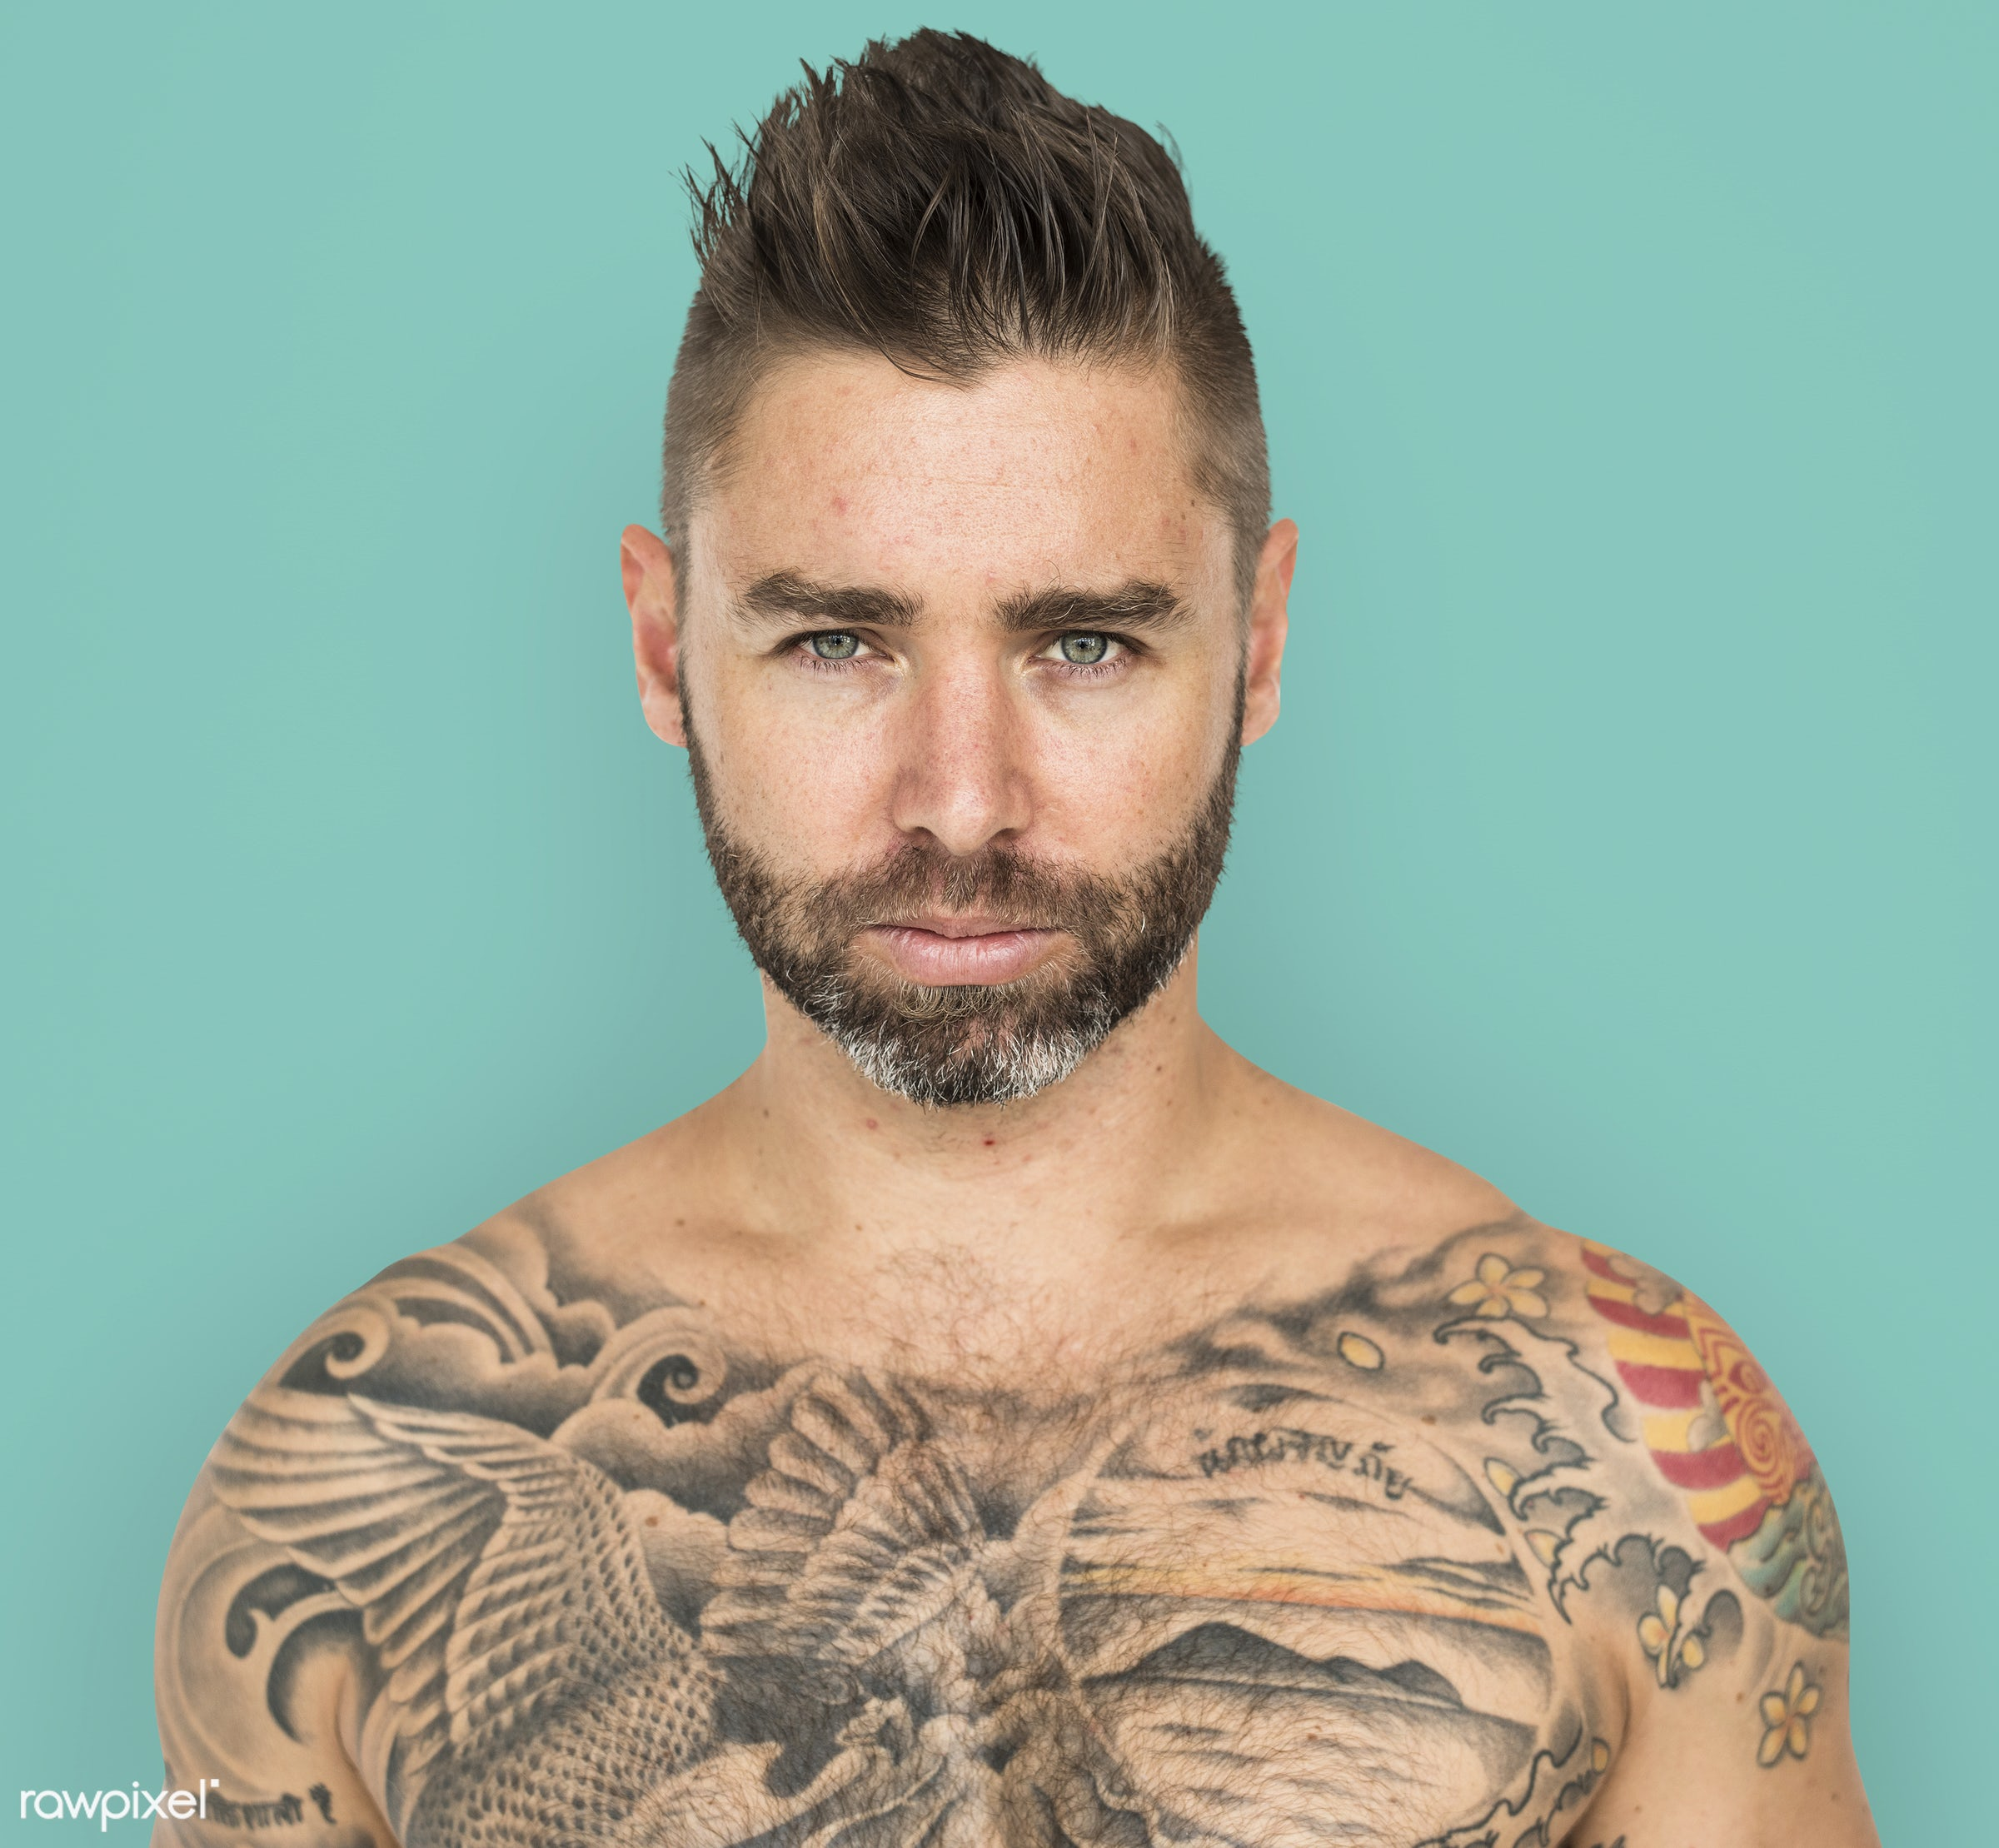 adult, background, bare chest, beard, caucasian, chest, design, emotion, expression, facial, fit, isolated, male, man, mood...